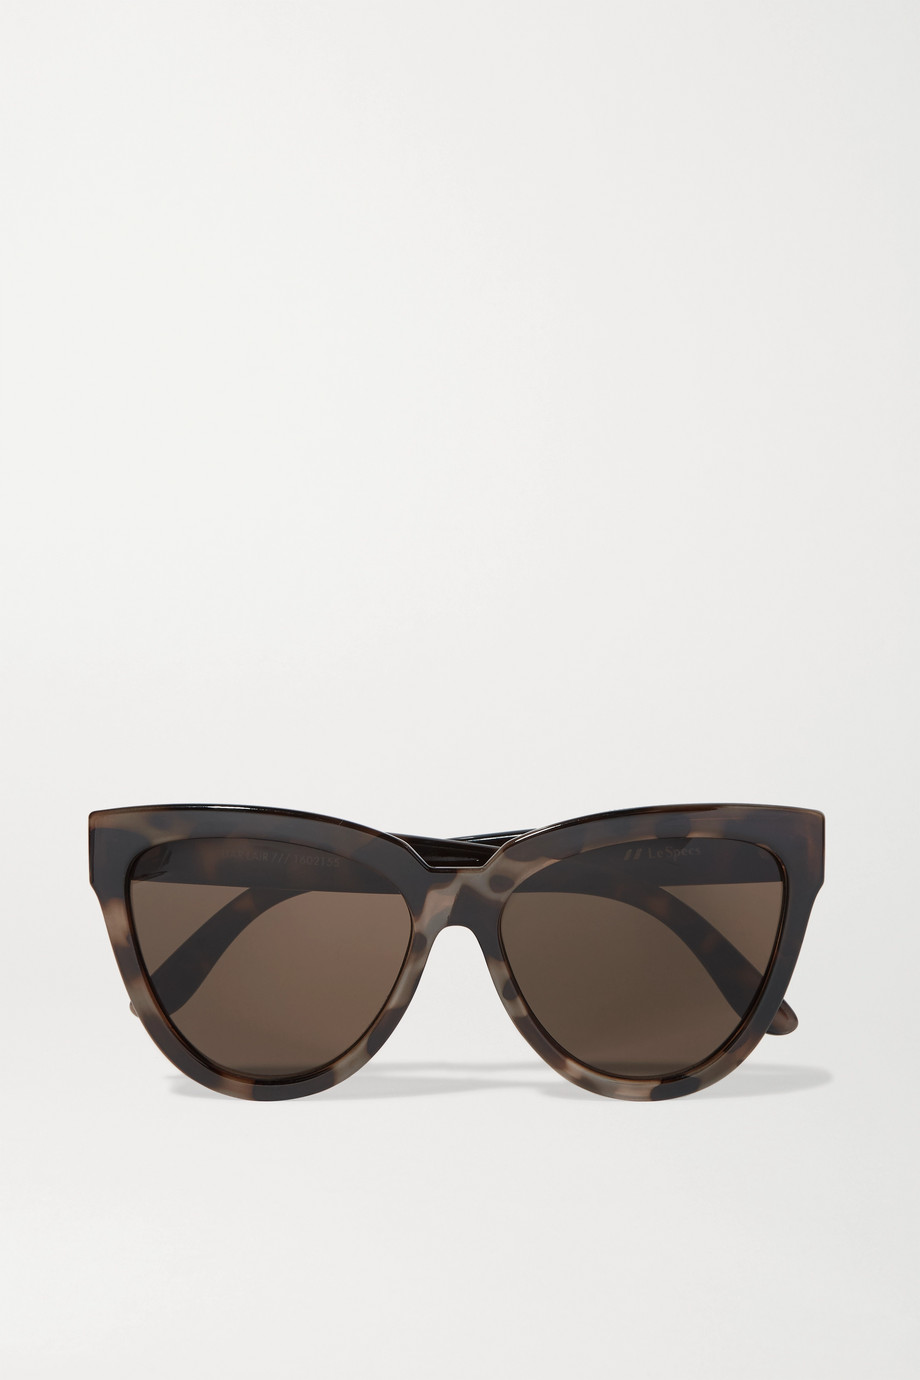 Le Specs Liar Lair cat-eye tortoiseshell acetate sunglasses